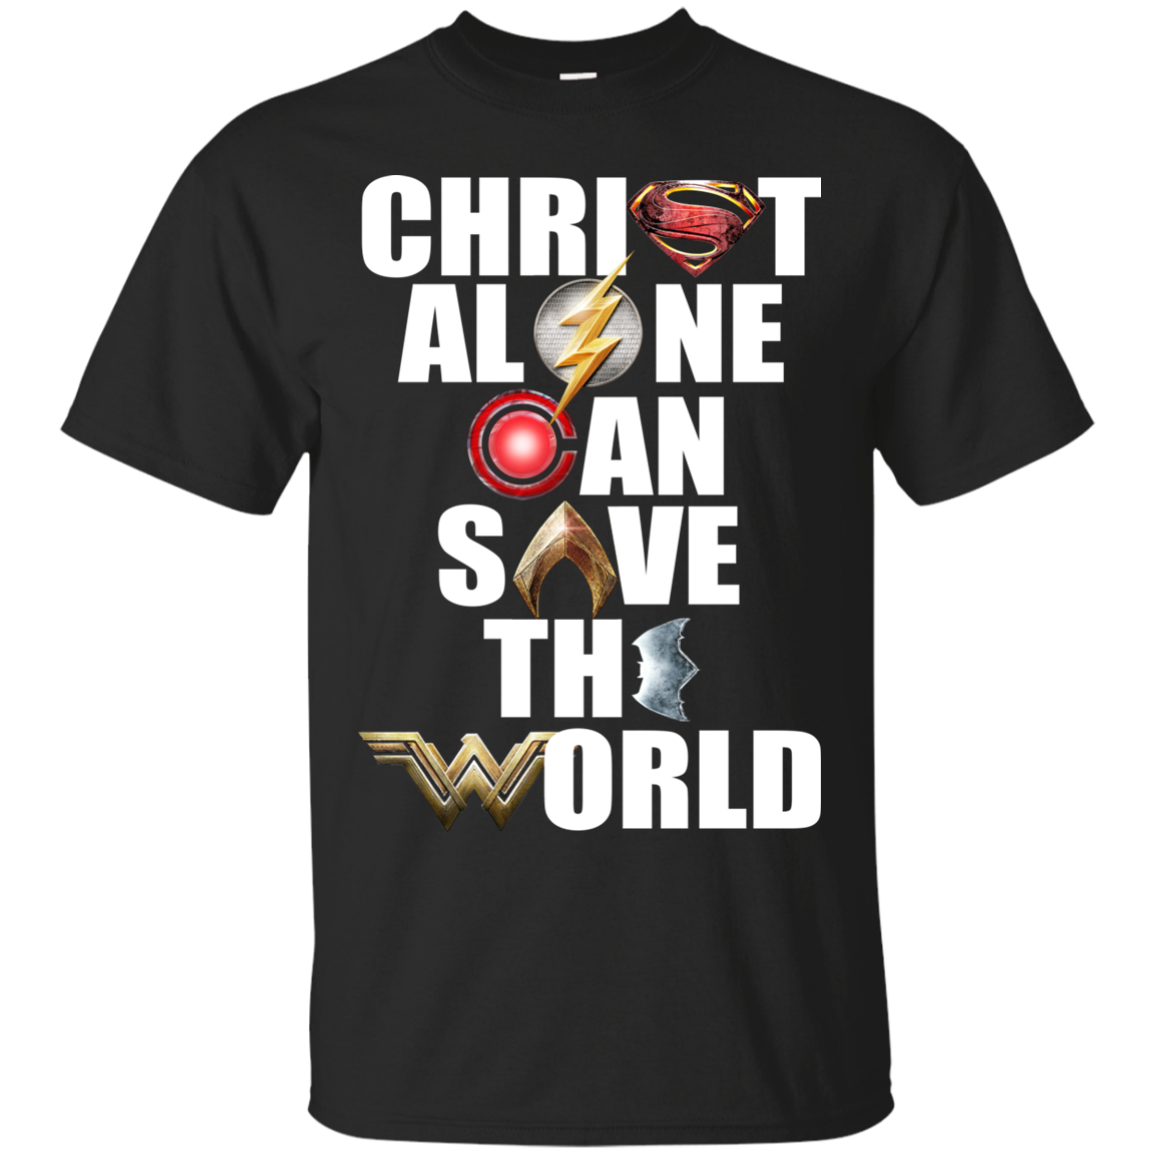 4fde88b2 Justice League - Christ Alone Can Save The World Shirt, Hoodie. You can't  save the world alone but Christ alone can do that.